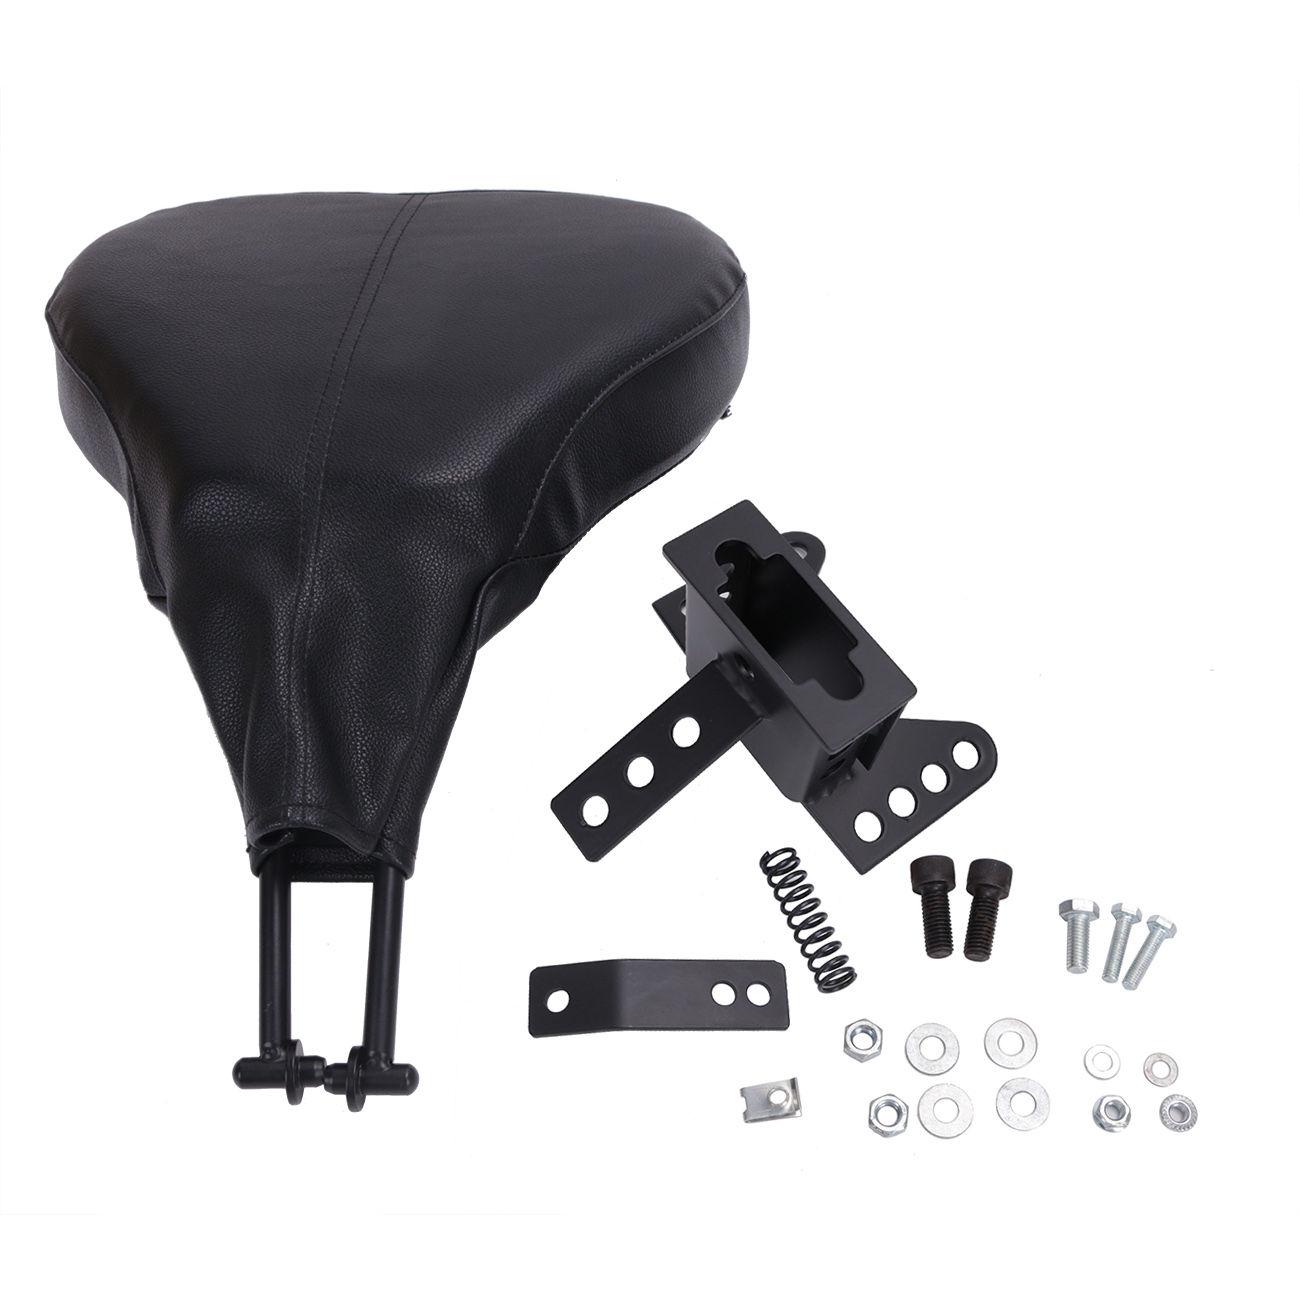 High Quality Leather Seat Adjustable Driver Rider Backrest For Harley 1988 - 2008 Touring EFI FLHT Back Rest Motorcycle MB125<br><br>Aliexpress